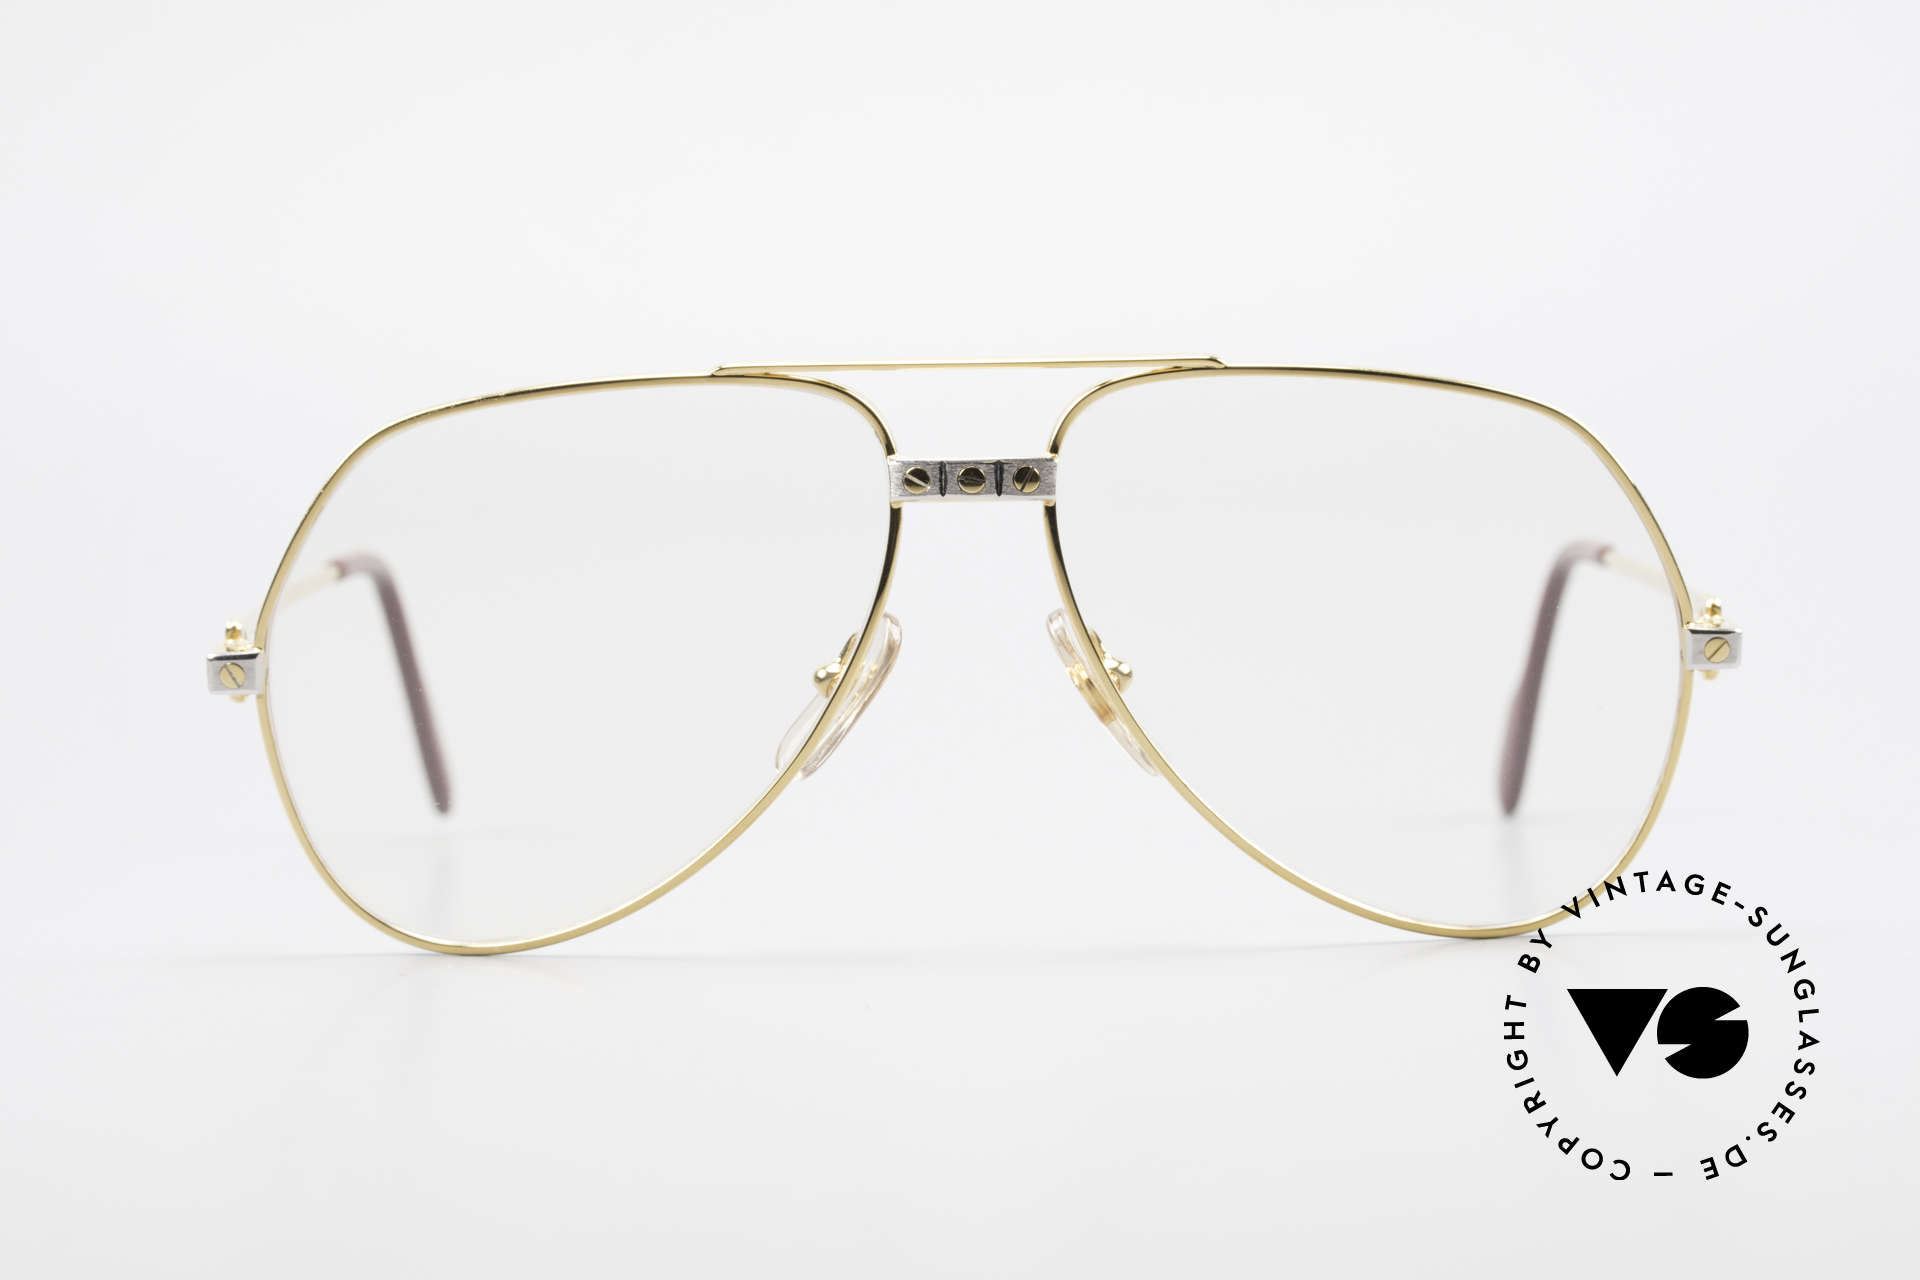 """Cartier Vendome Santos - M Changeable Cartier Lenses, mod. """"Vendome"""" was launched in 1983 & made till 1997, Made for Men"""